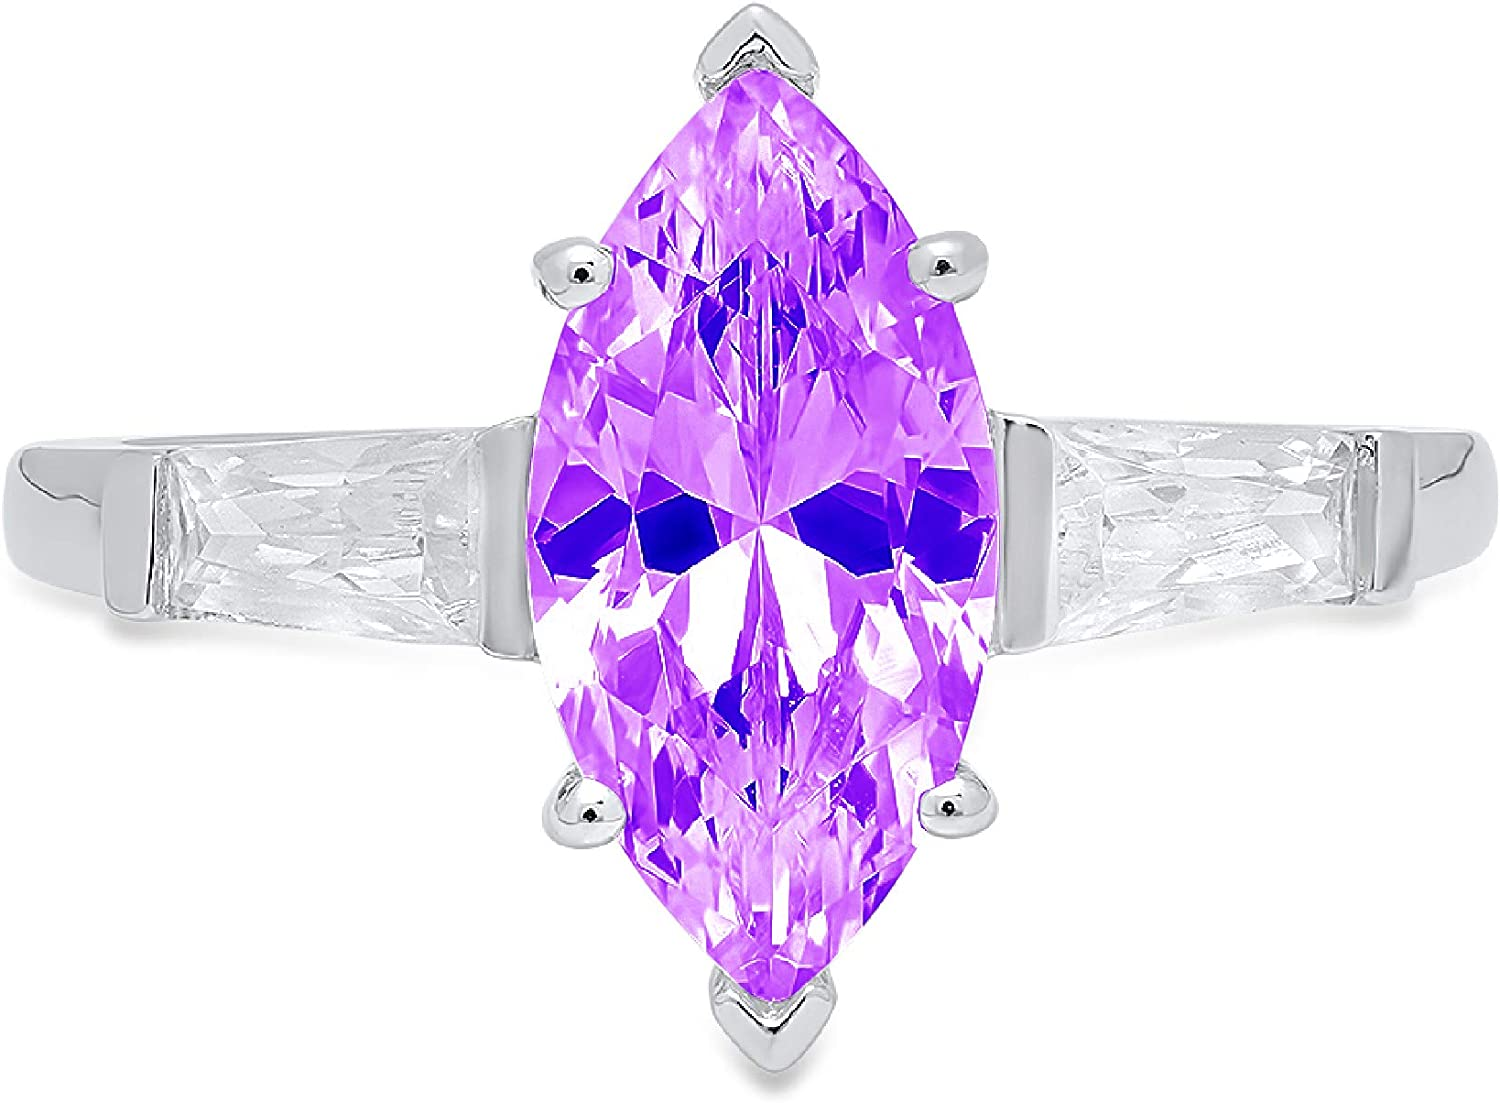 1.94ct Marquise Baguette cut 3 stone Solitaire with Accent Natural Purple Amethyst Gem Stone Ideal VVS1 Engagement Promise Statement Anniversary Bridal Wedding ring 14k White Gold